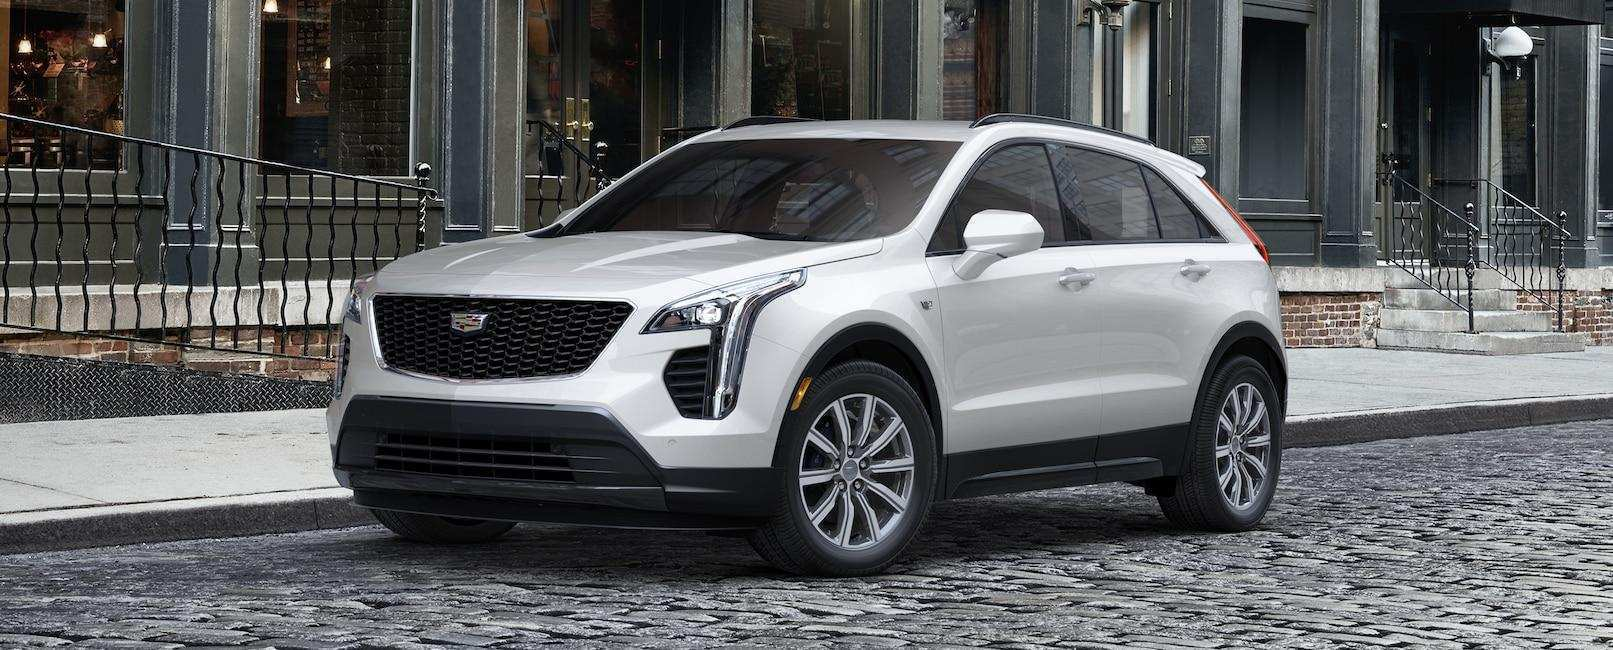 95 Gallery of New Cadillac Xt4 2019 Images Engine Images with New Cadillac Xt4 2019 Images Engine